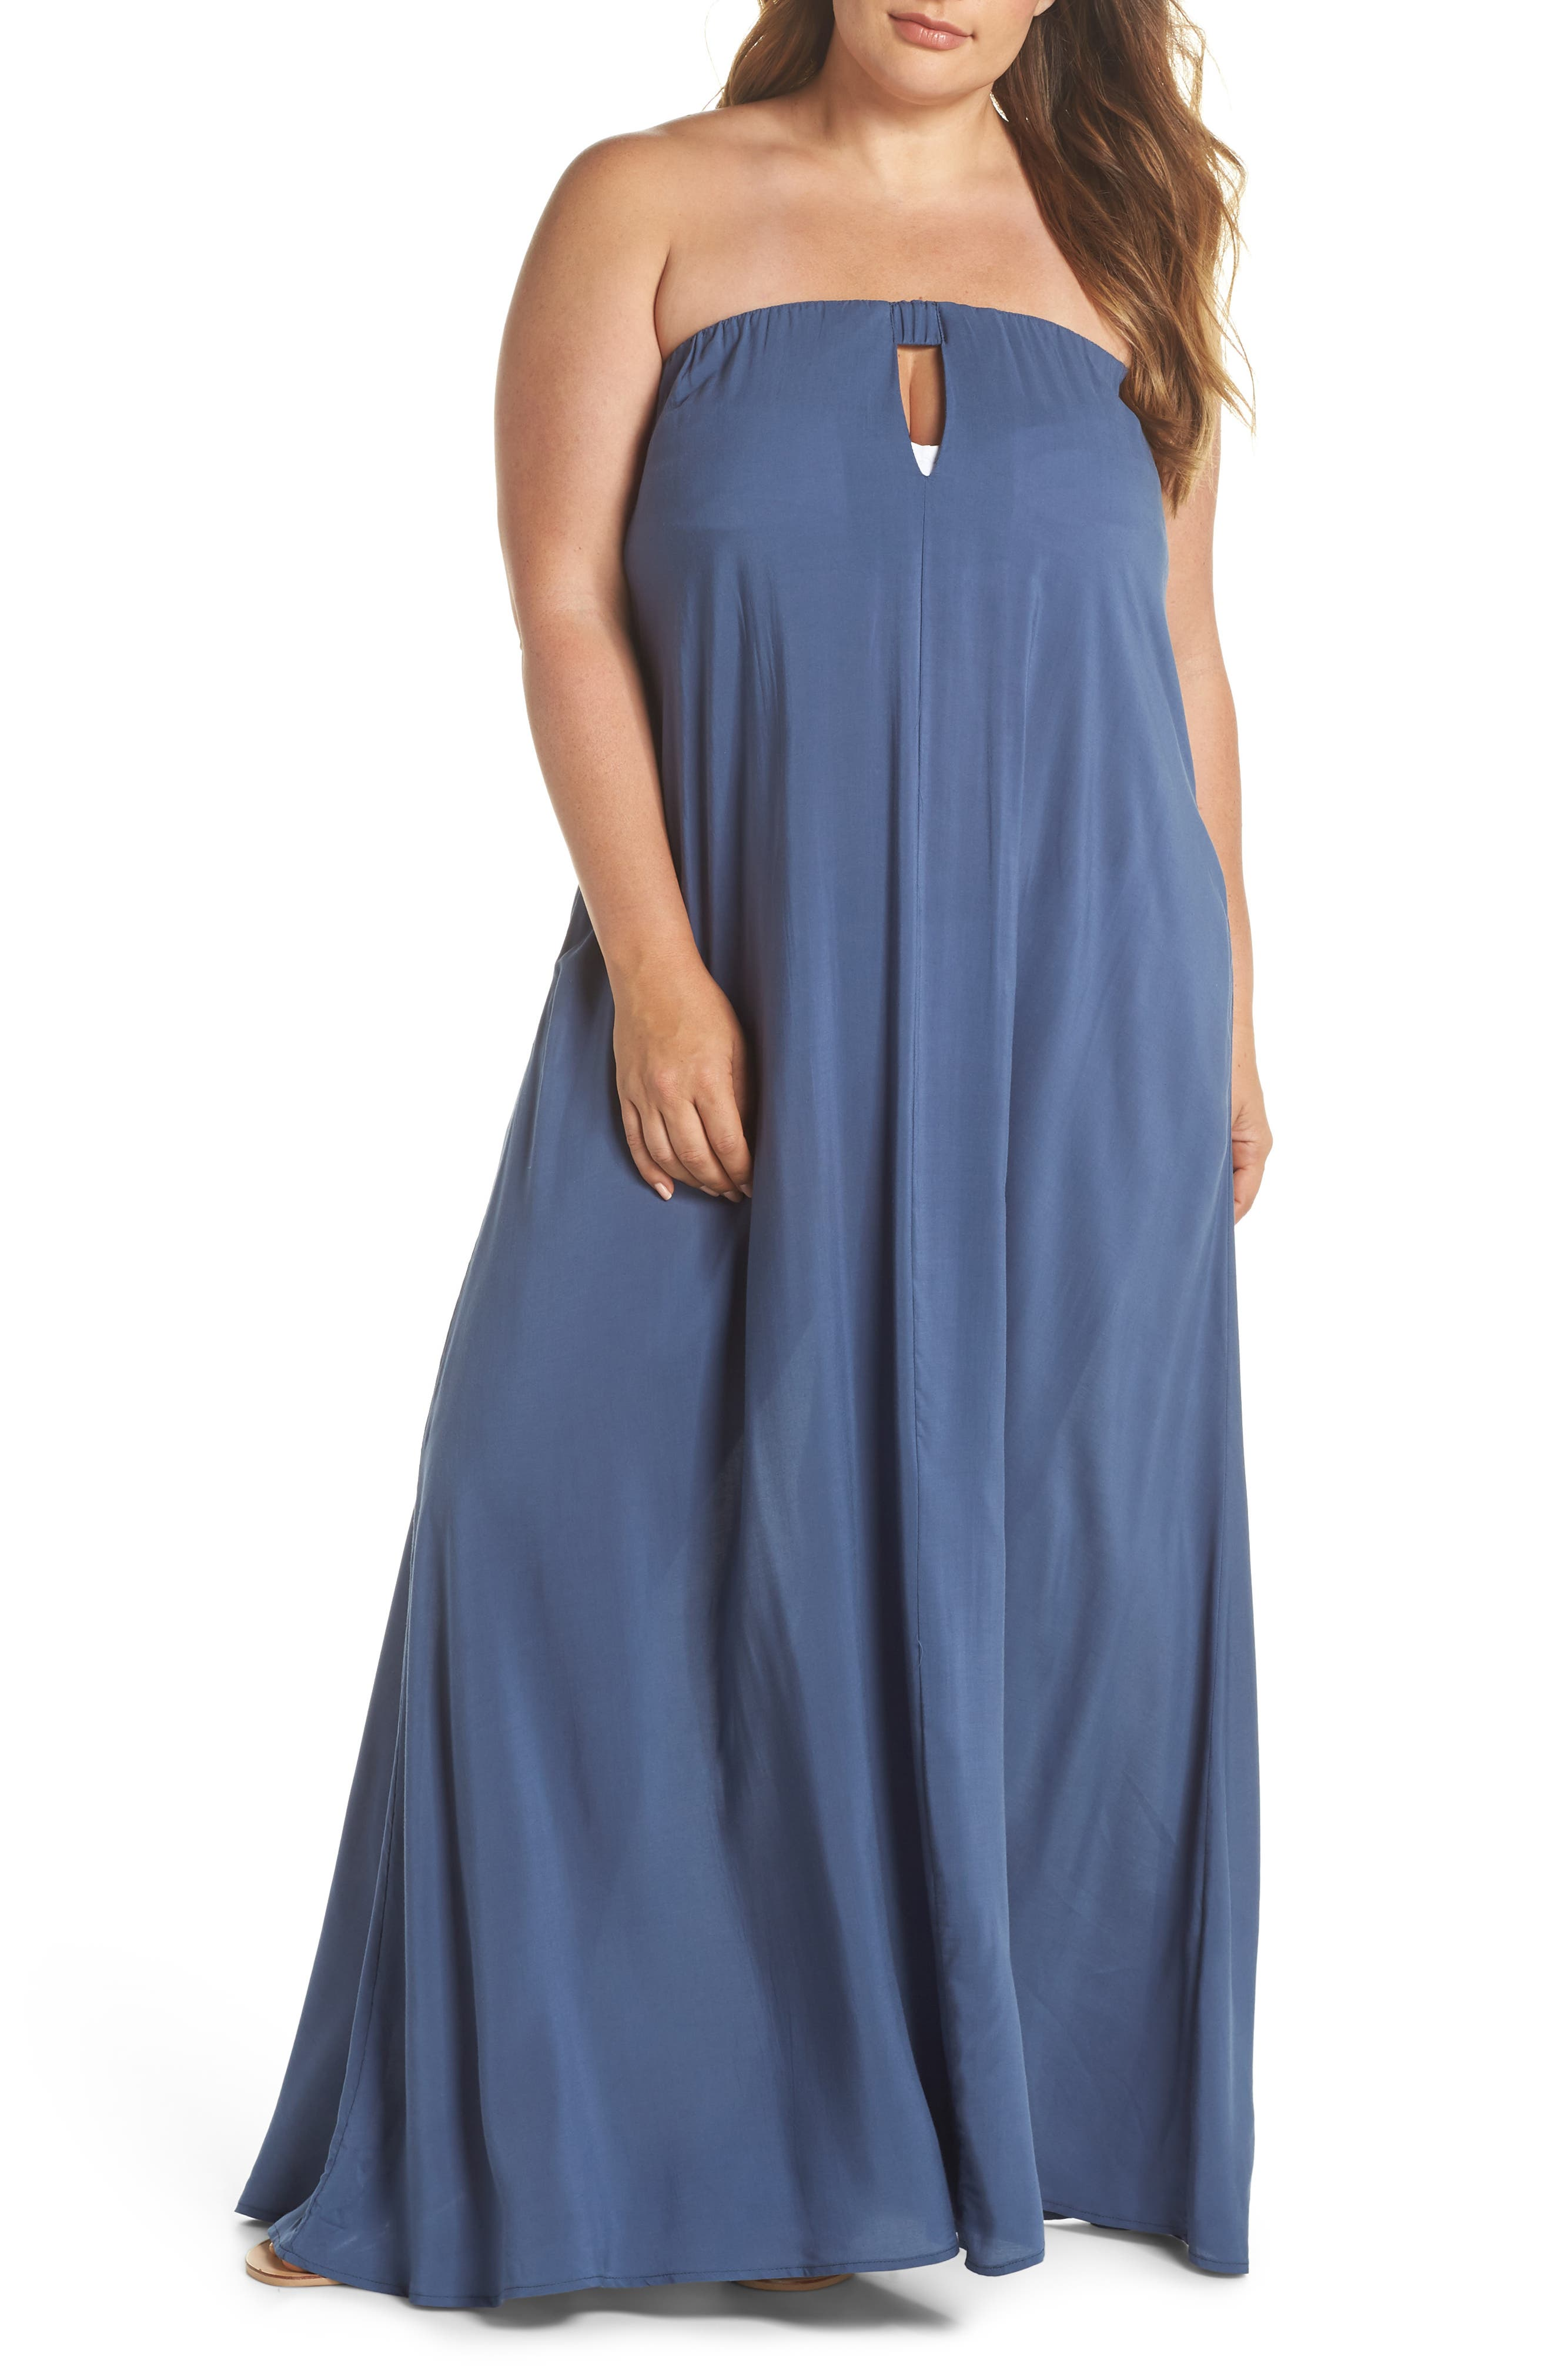 Strapless Keyhole Cover-Up Maxi Dress,                         Main,                         color, 462